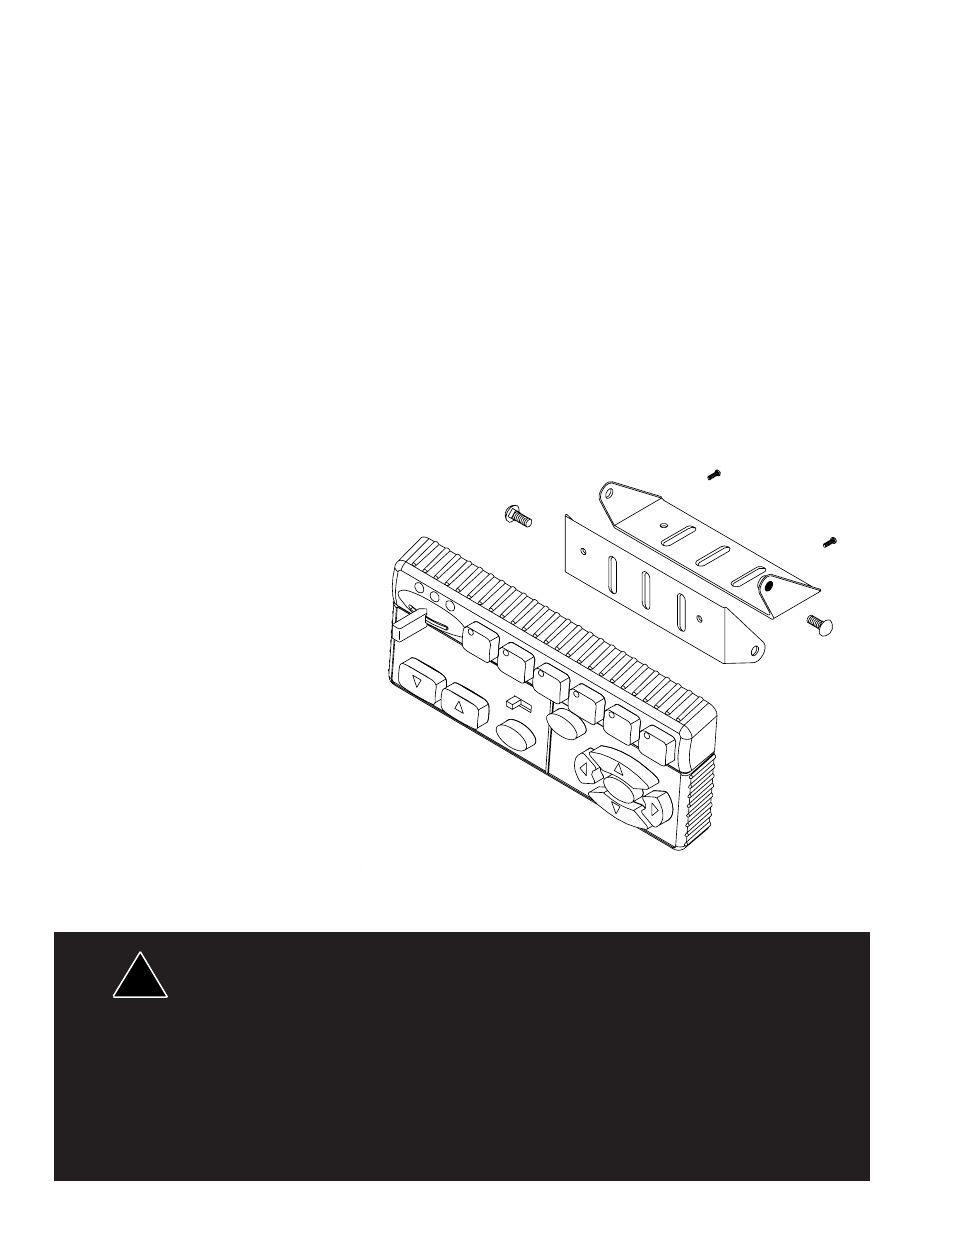 Unpacking Pre Installation Code 3 Rls User Manual Page 4 28 2 Way Switch Operation